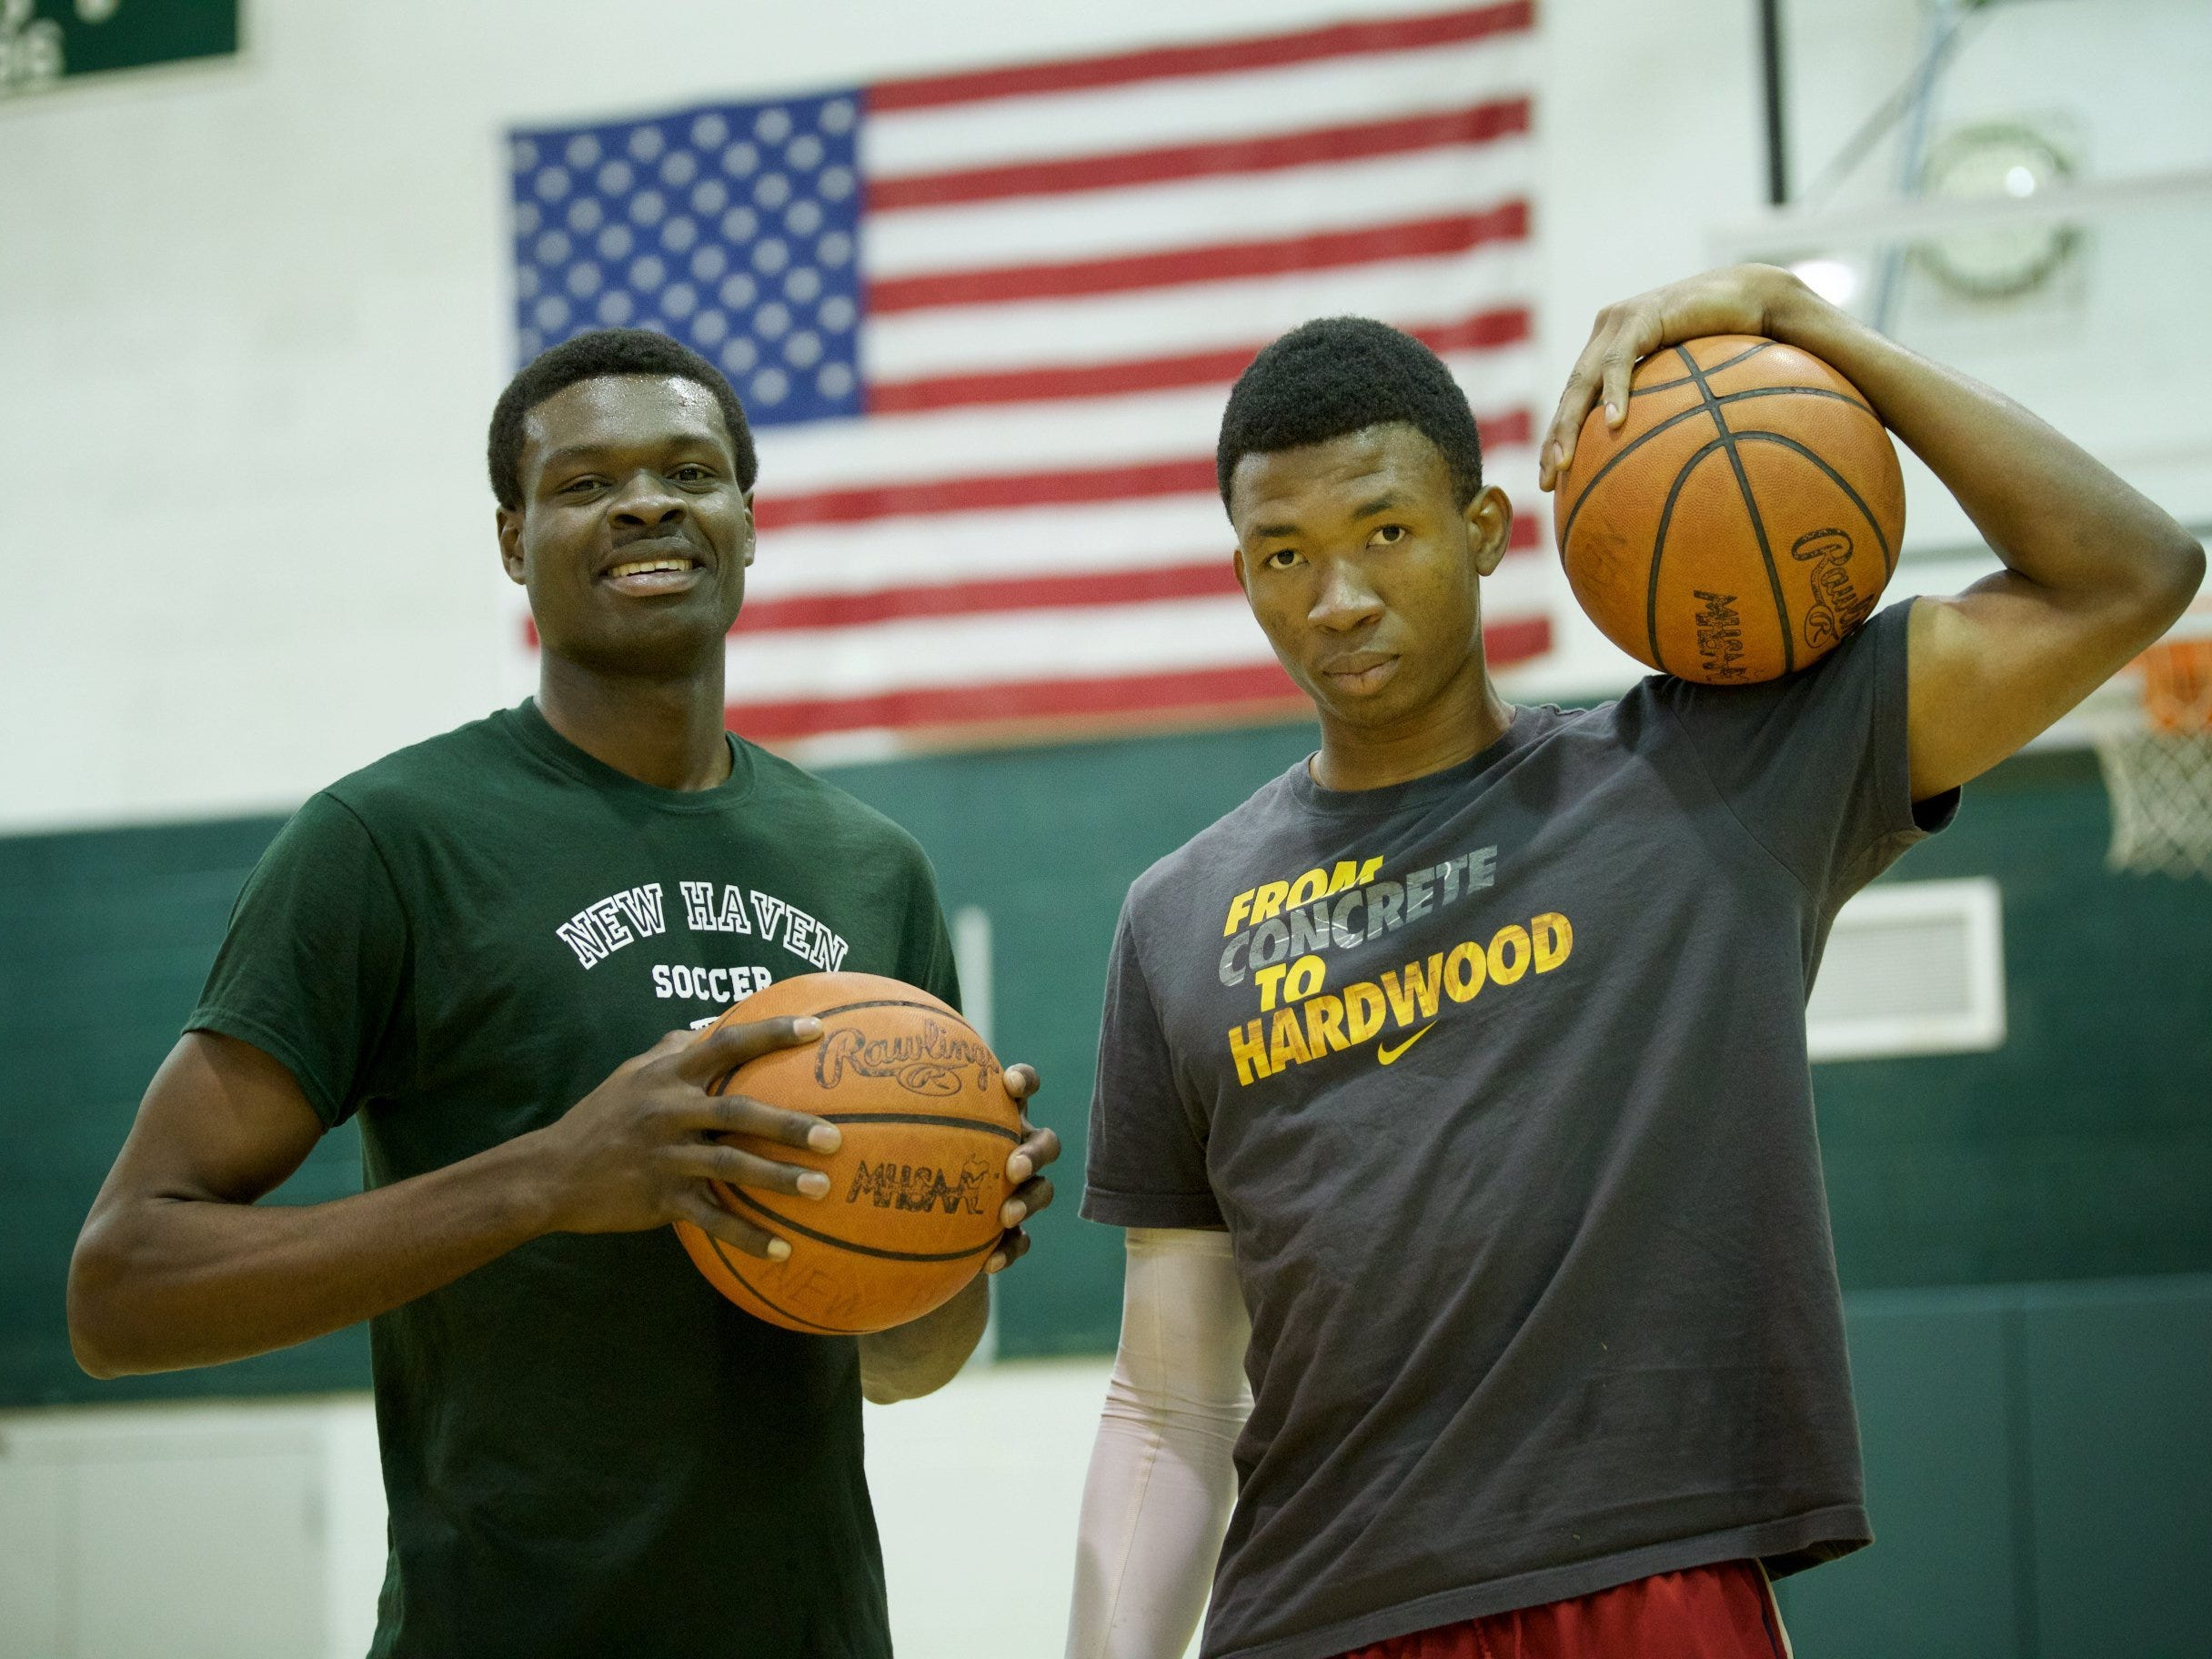 New Haven juniors Innocent Nwoko, left, and Jerry Ben pose during an open gym at the high school Wednesday. Both moved to the United States from Nigeria in 2013. After only two years of playing basketball, each has received a college scholarship offer.